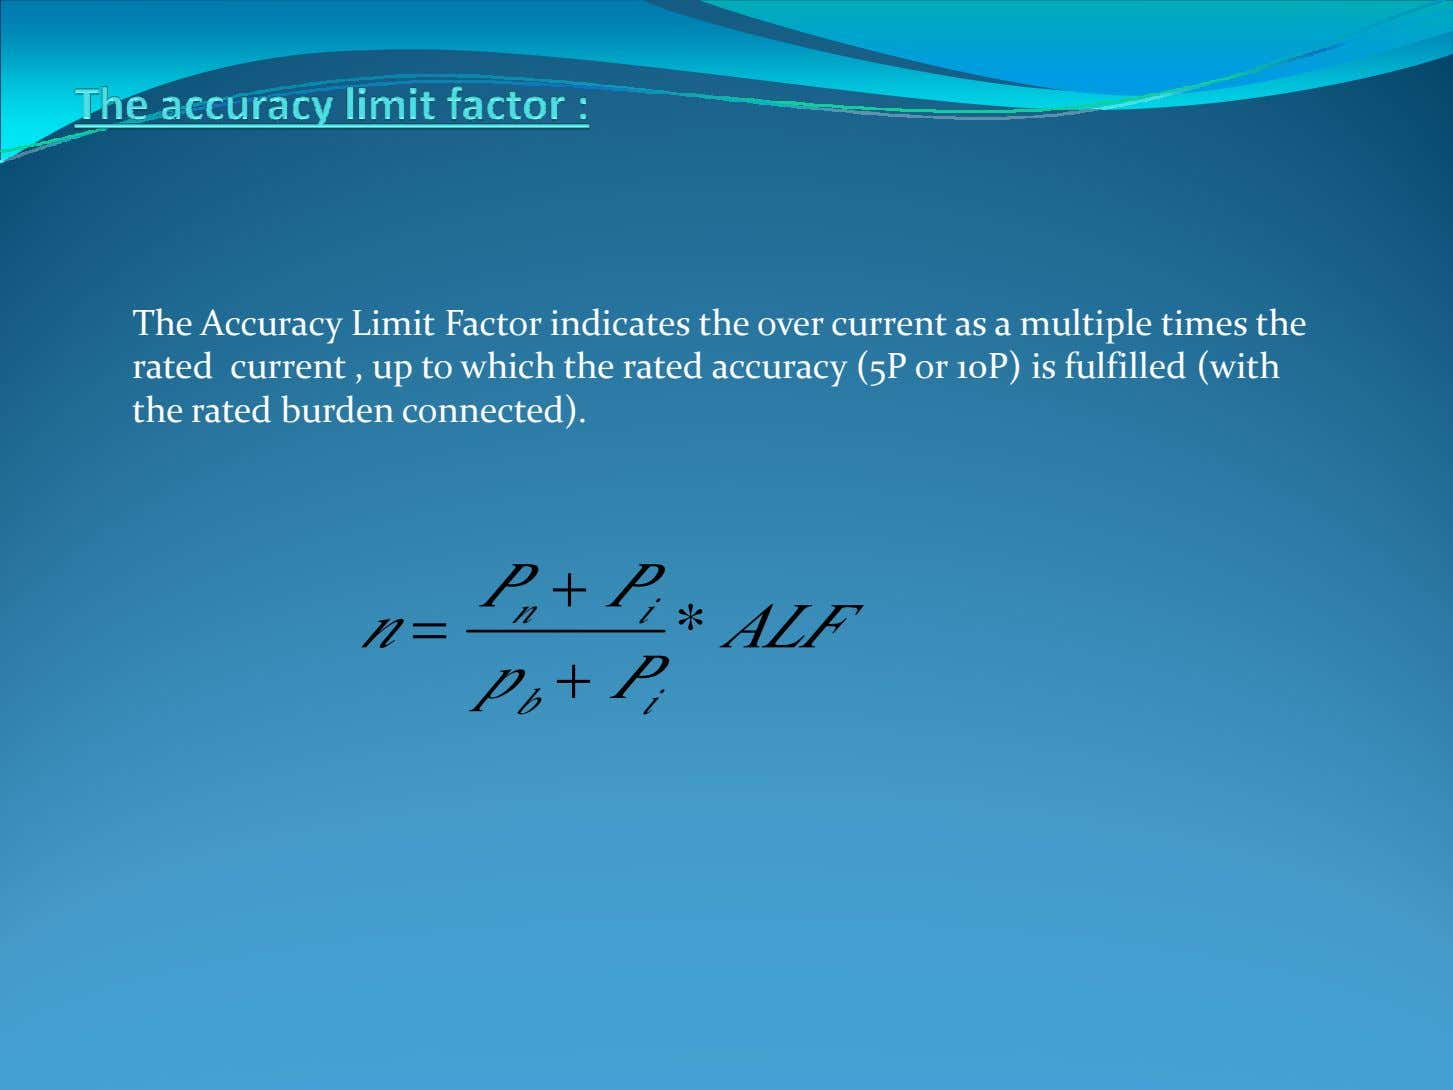 The Accuracy Limit Factor indicates the over current as a multiple times the rated current